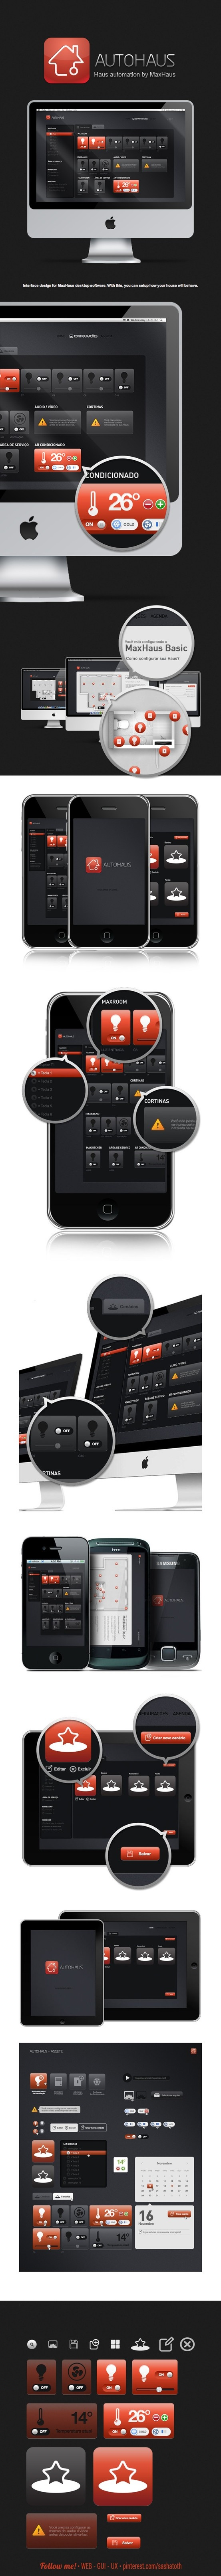 AutoHaus - Interface by Anderson Mancini, via Behance *** #gui #ux #ui #iphone #android #web #behance